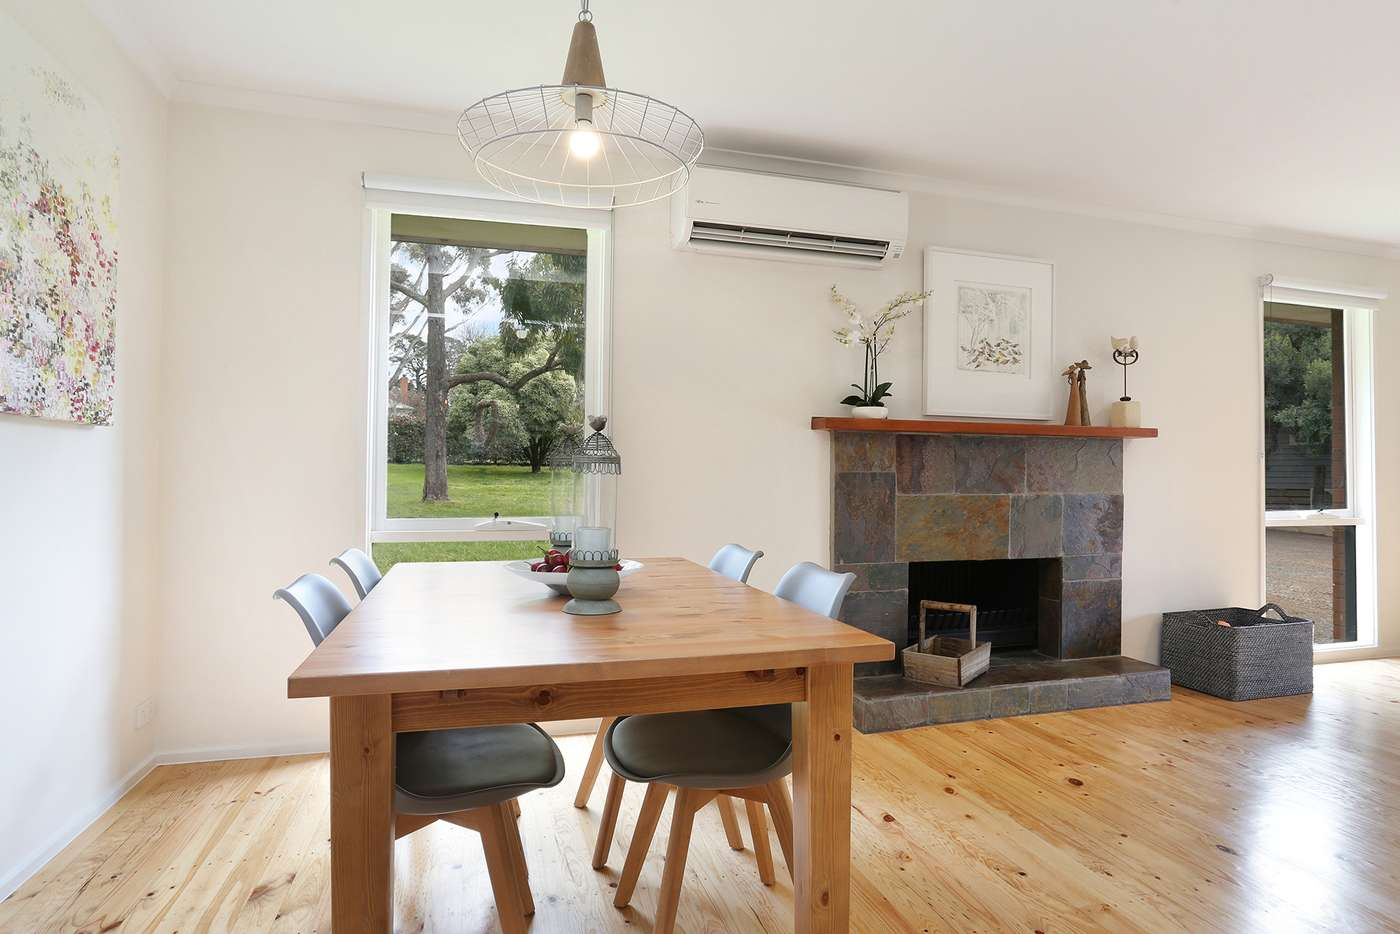 Sixth view of Homely house listing, 4 Couzens Lane, Romsey VIC 3434